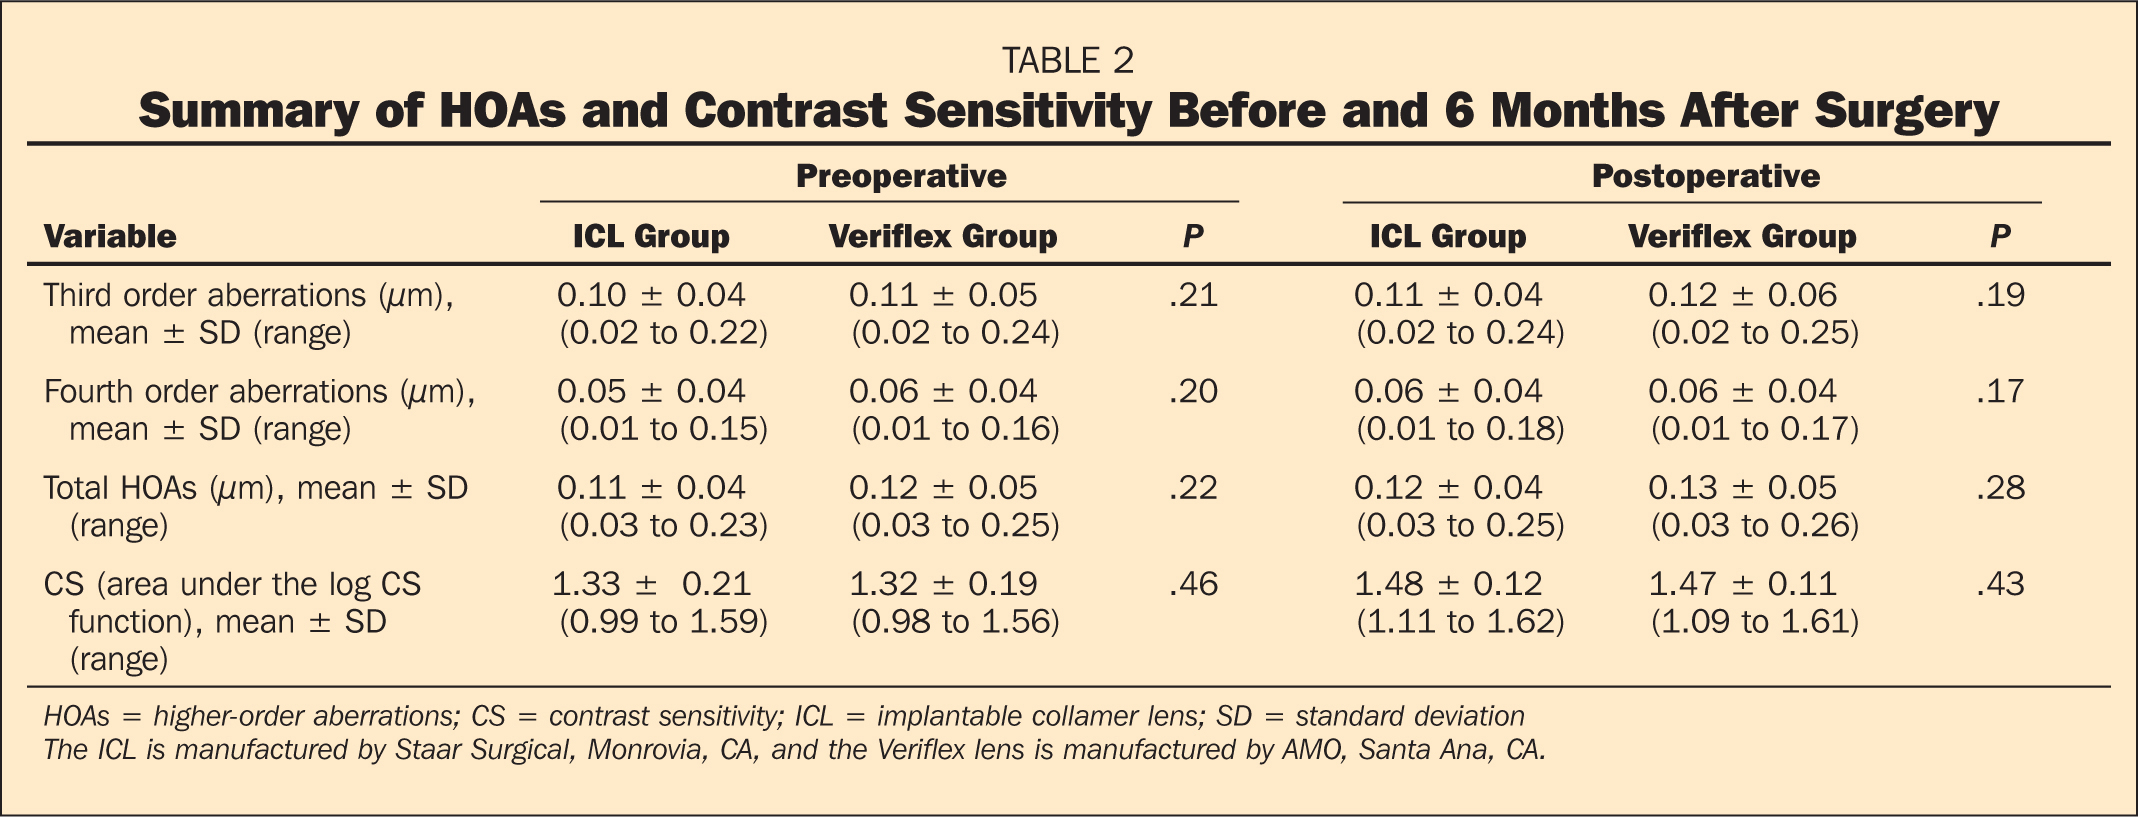 Summary of HOAs and Contrast Sensitivity Before and 6 Months After Surgery